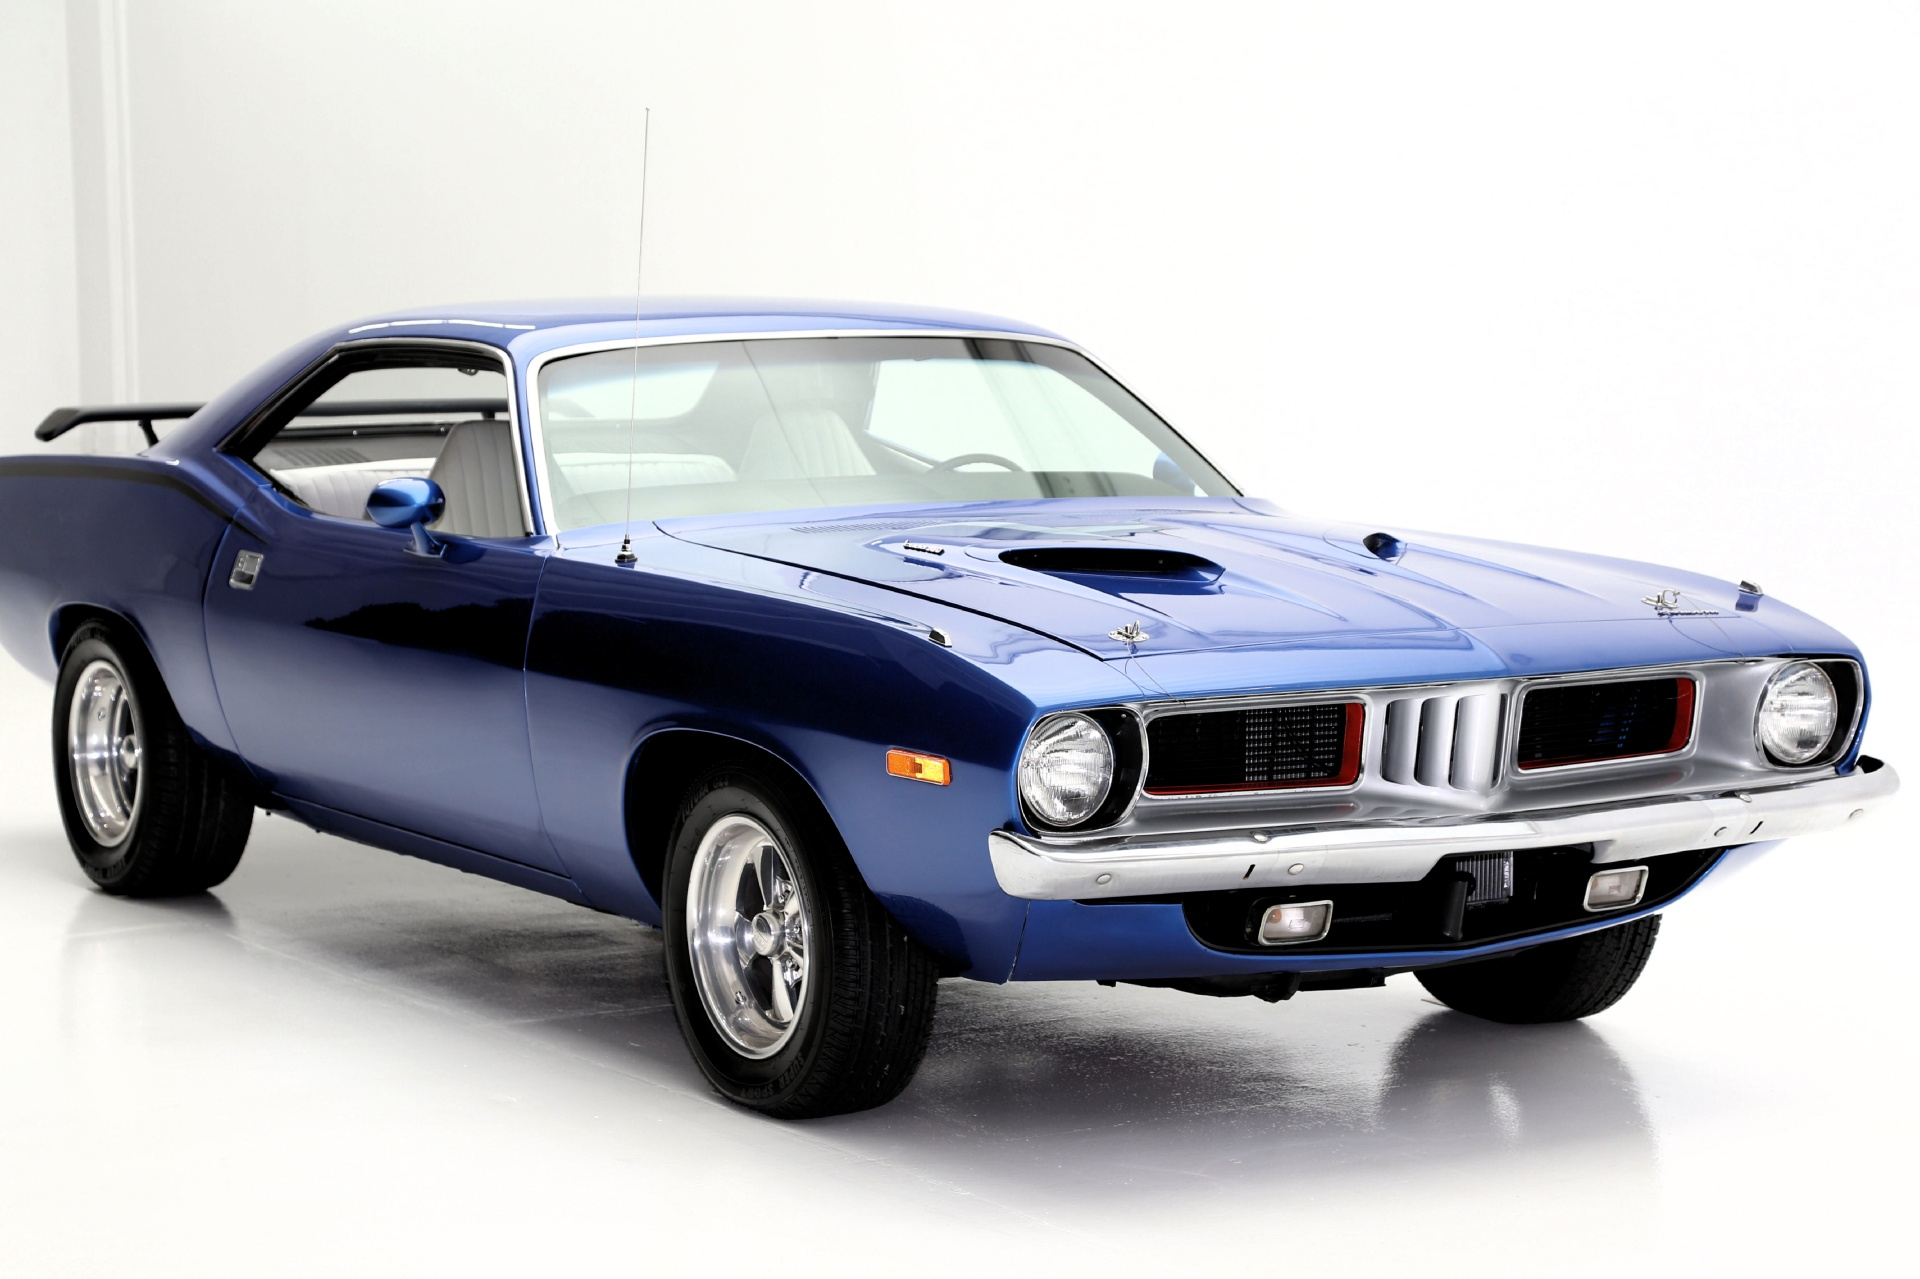 Classic Muscle Cars >> 1973 Plymouth Barracuda V8 Cuda - American Dream Machines | Classic Cars | Muscle Cars